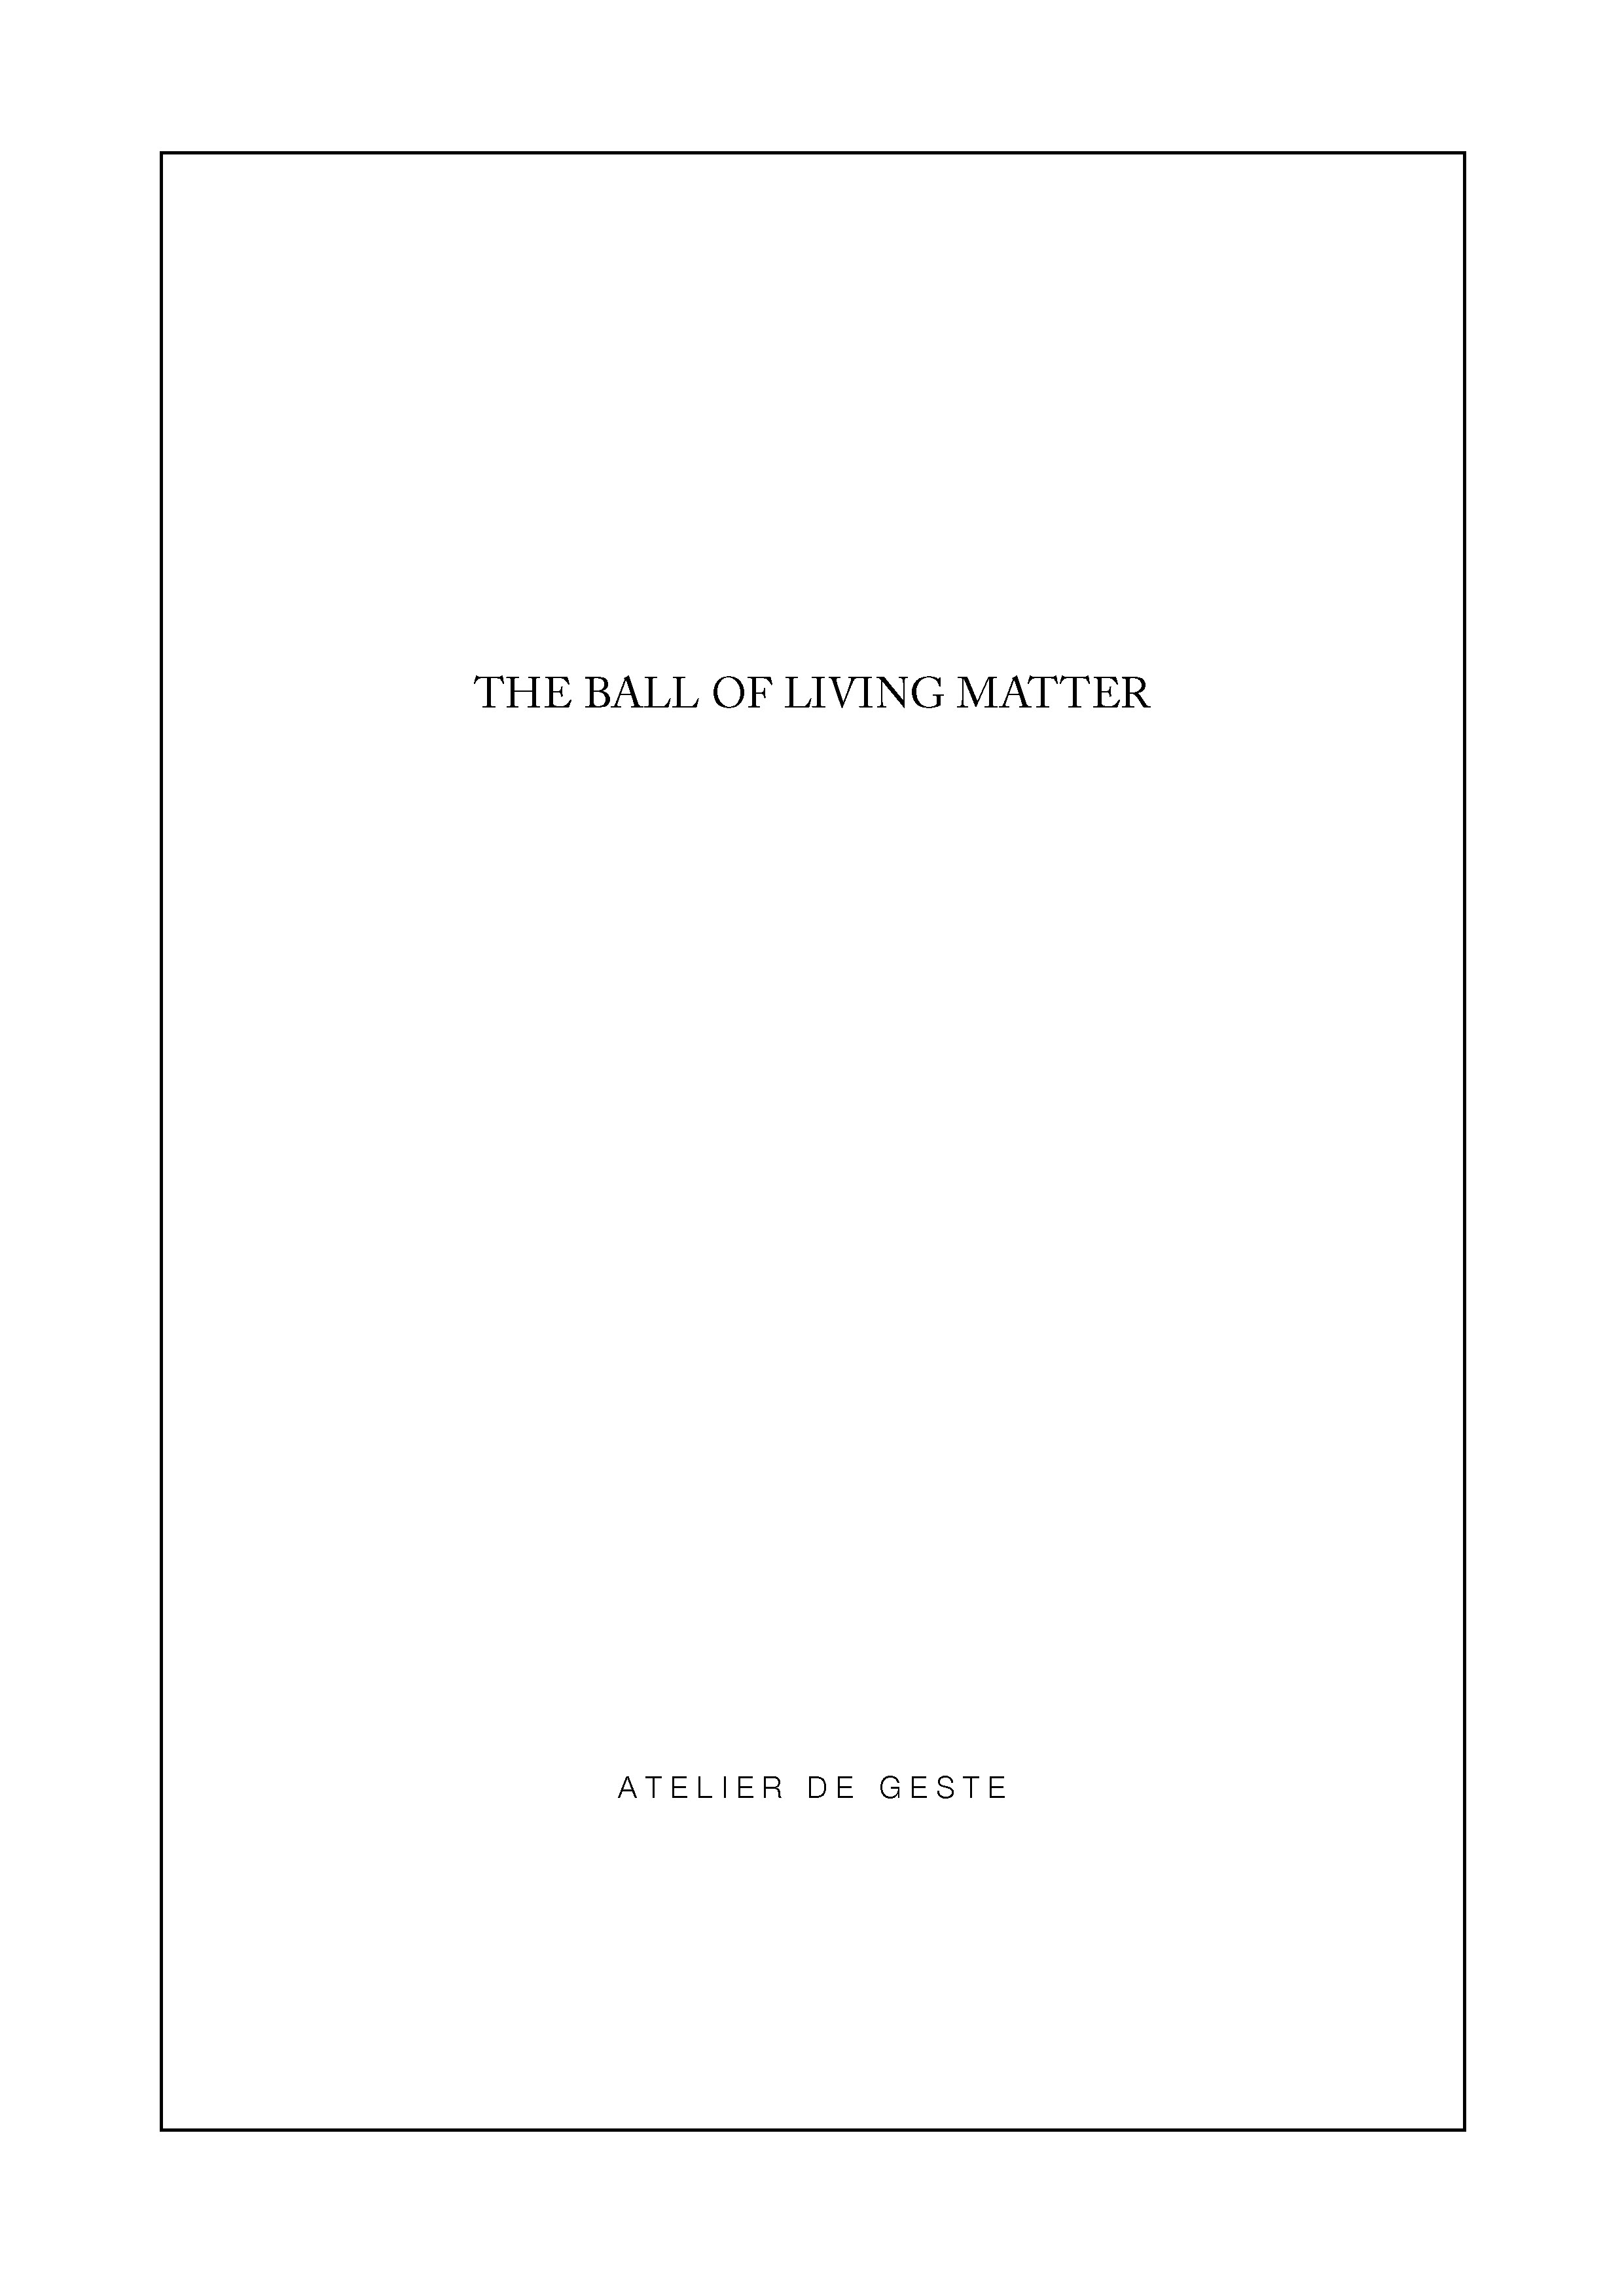 Projet diplôme - The ball of living matter - partition_Page_01.jpg